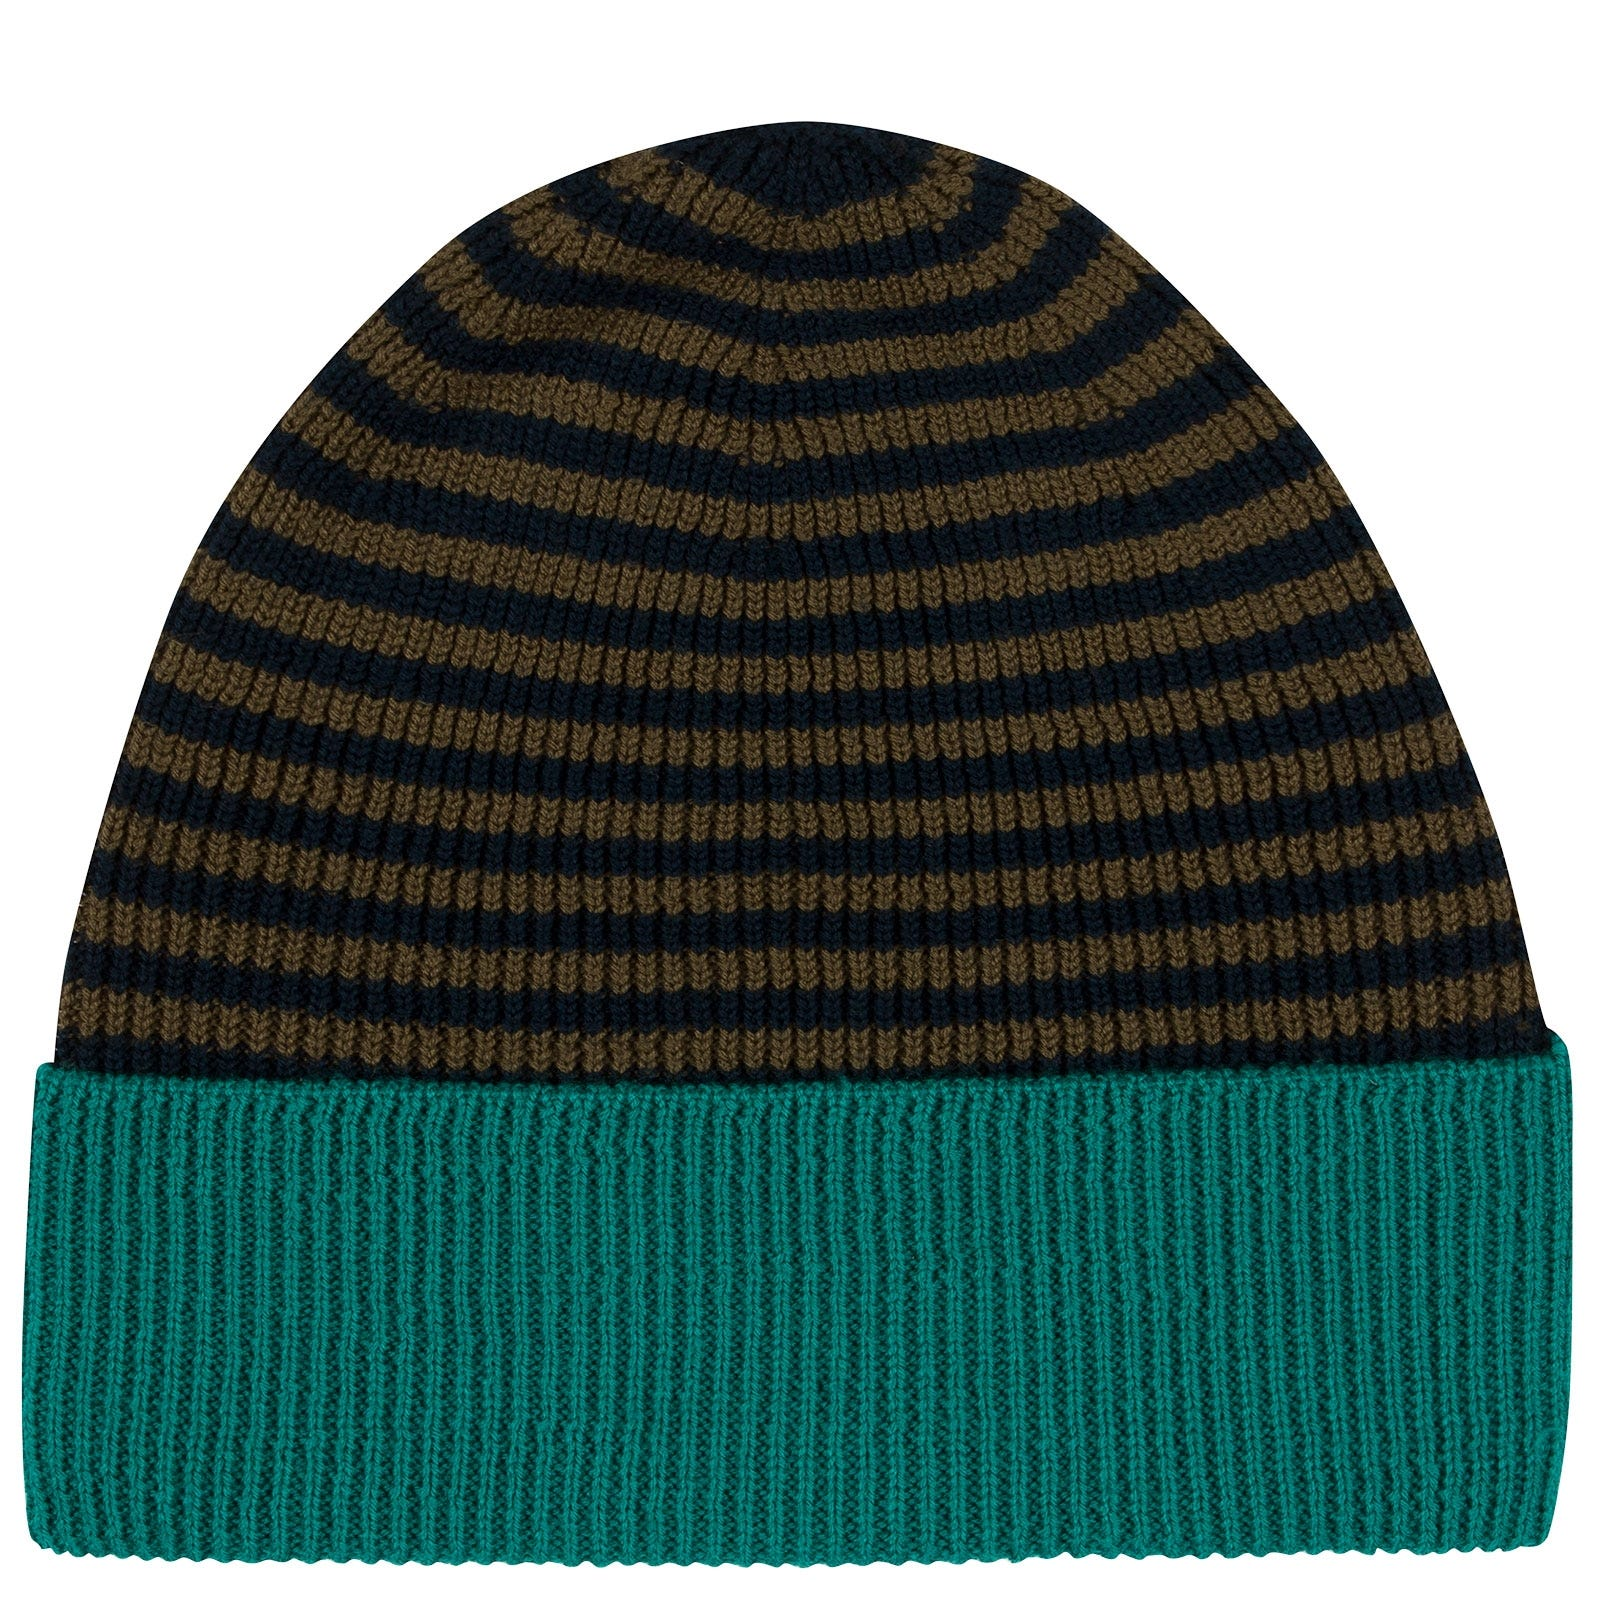 John Smedley Hubble Merino Wool Hat in Orion Green-ONE